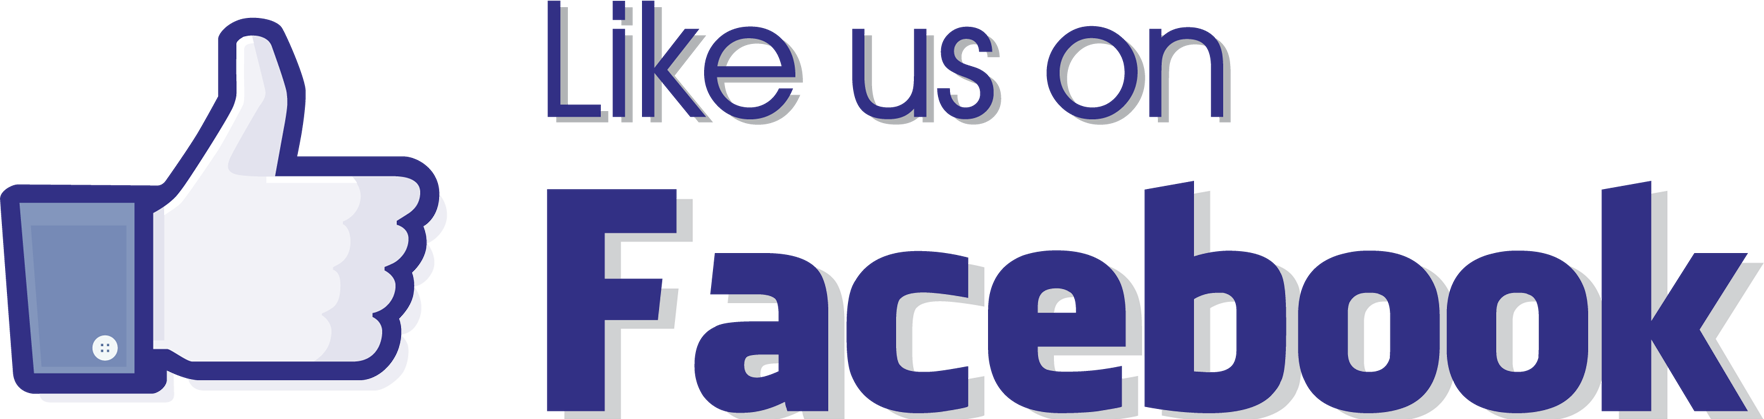 Image result for Facebook like button logo png